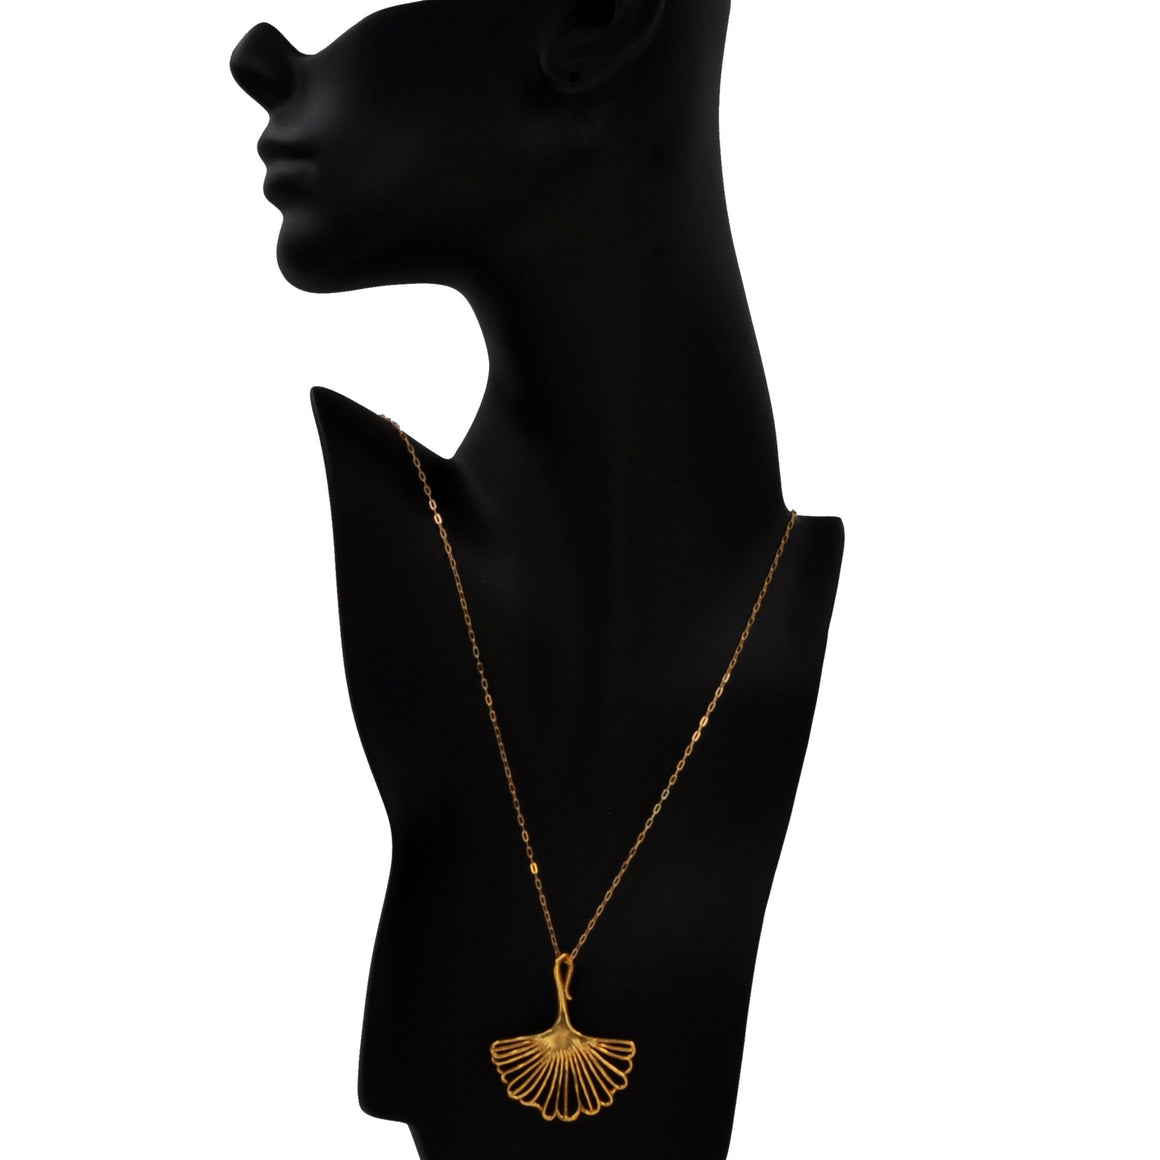 Ginkgo Pendant (Large) - 24K Gold Plated